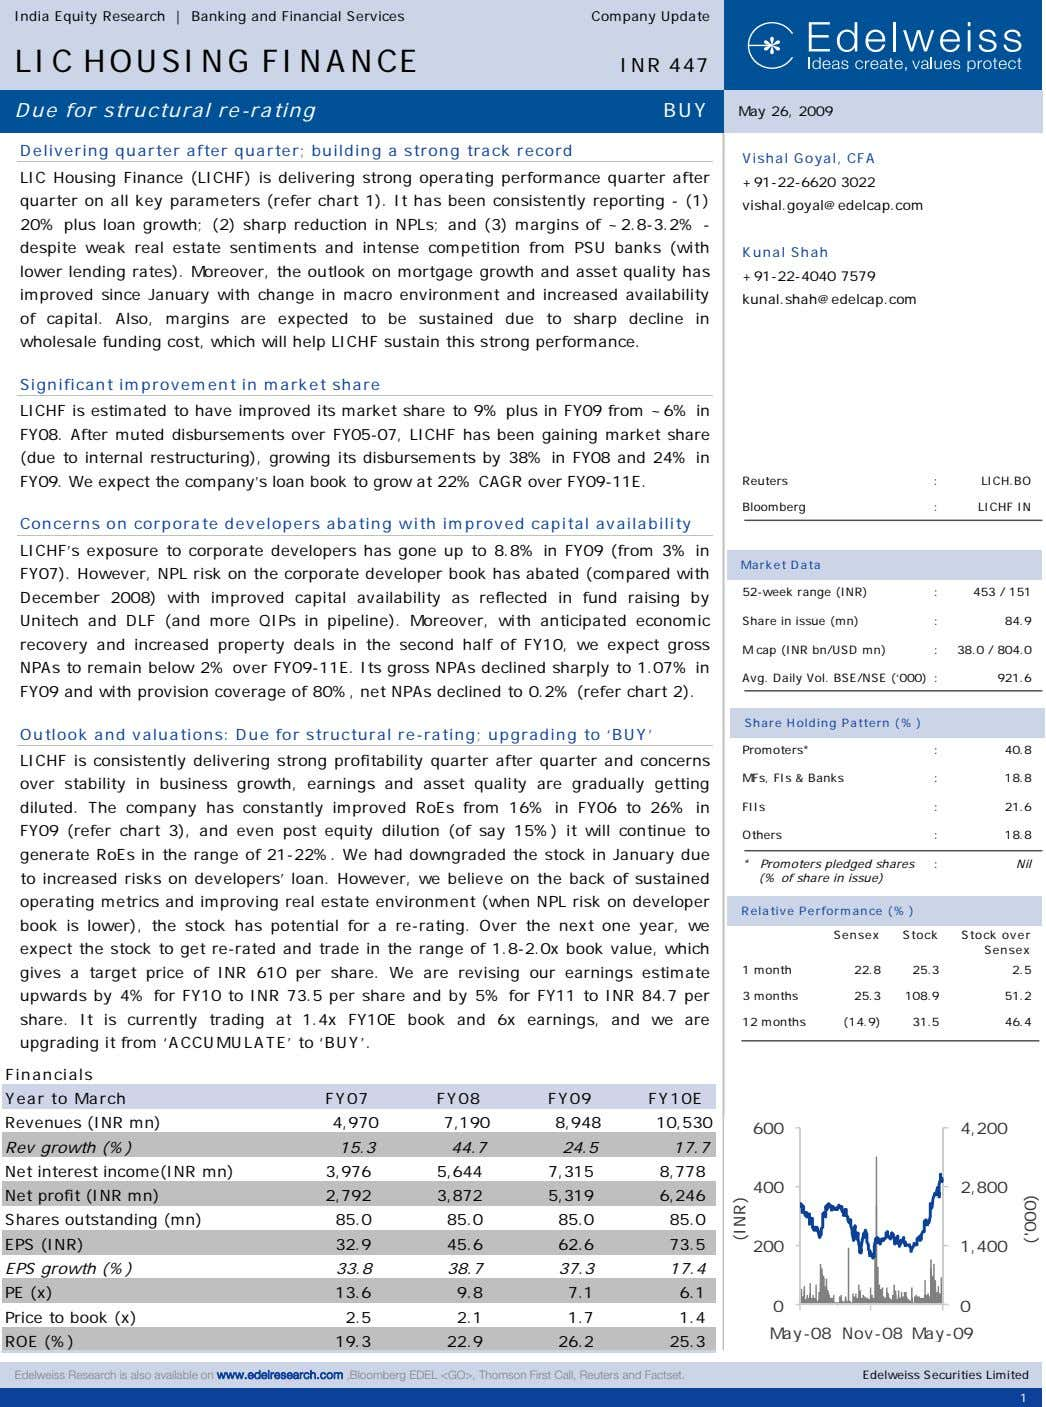 ` India Equity Research | Banking and Financial Services Company Update LIC HOUSING FINANCE INR